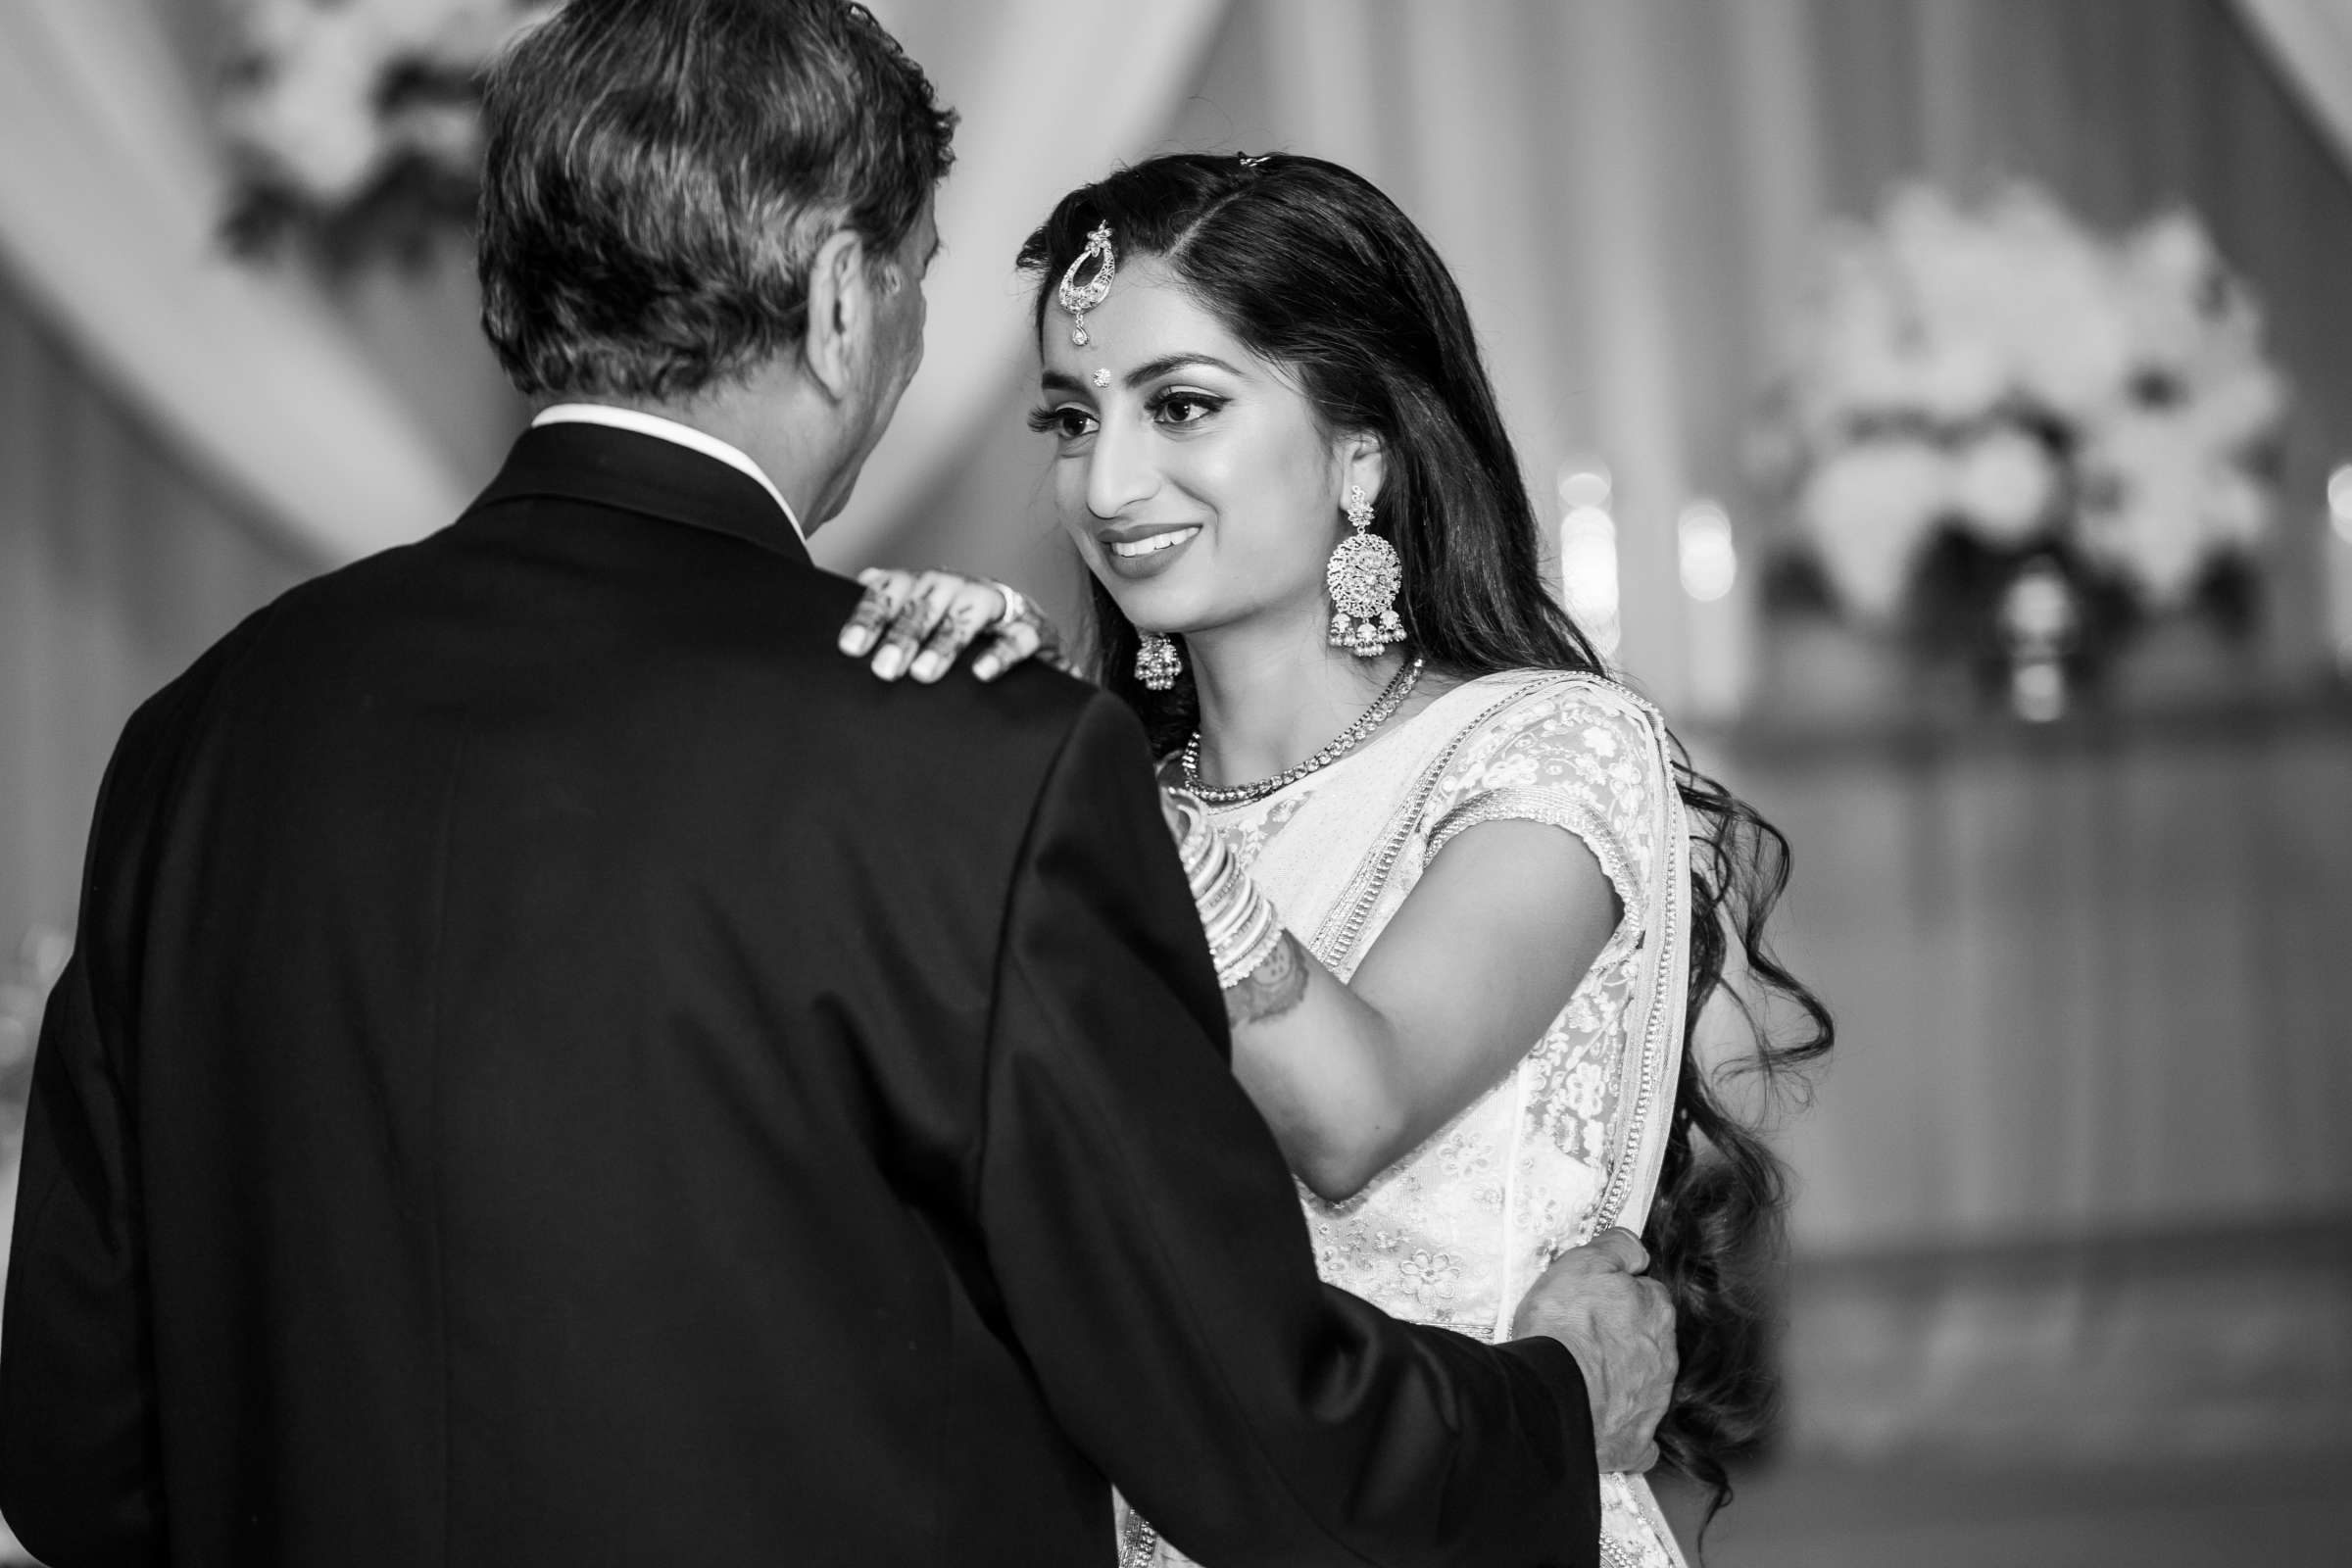 The Westin Carlsbad Resort and Spa Wedding coordinated by Shilpa Patel Events, Ami and Amit Wedding Photo #232 by True Photography